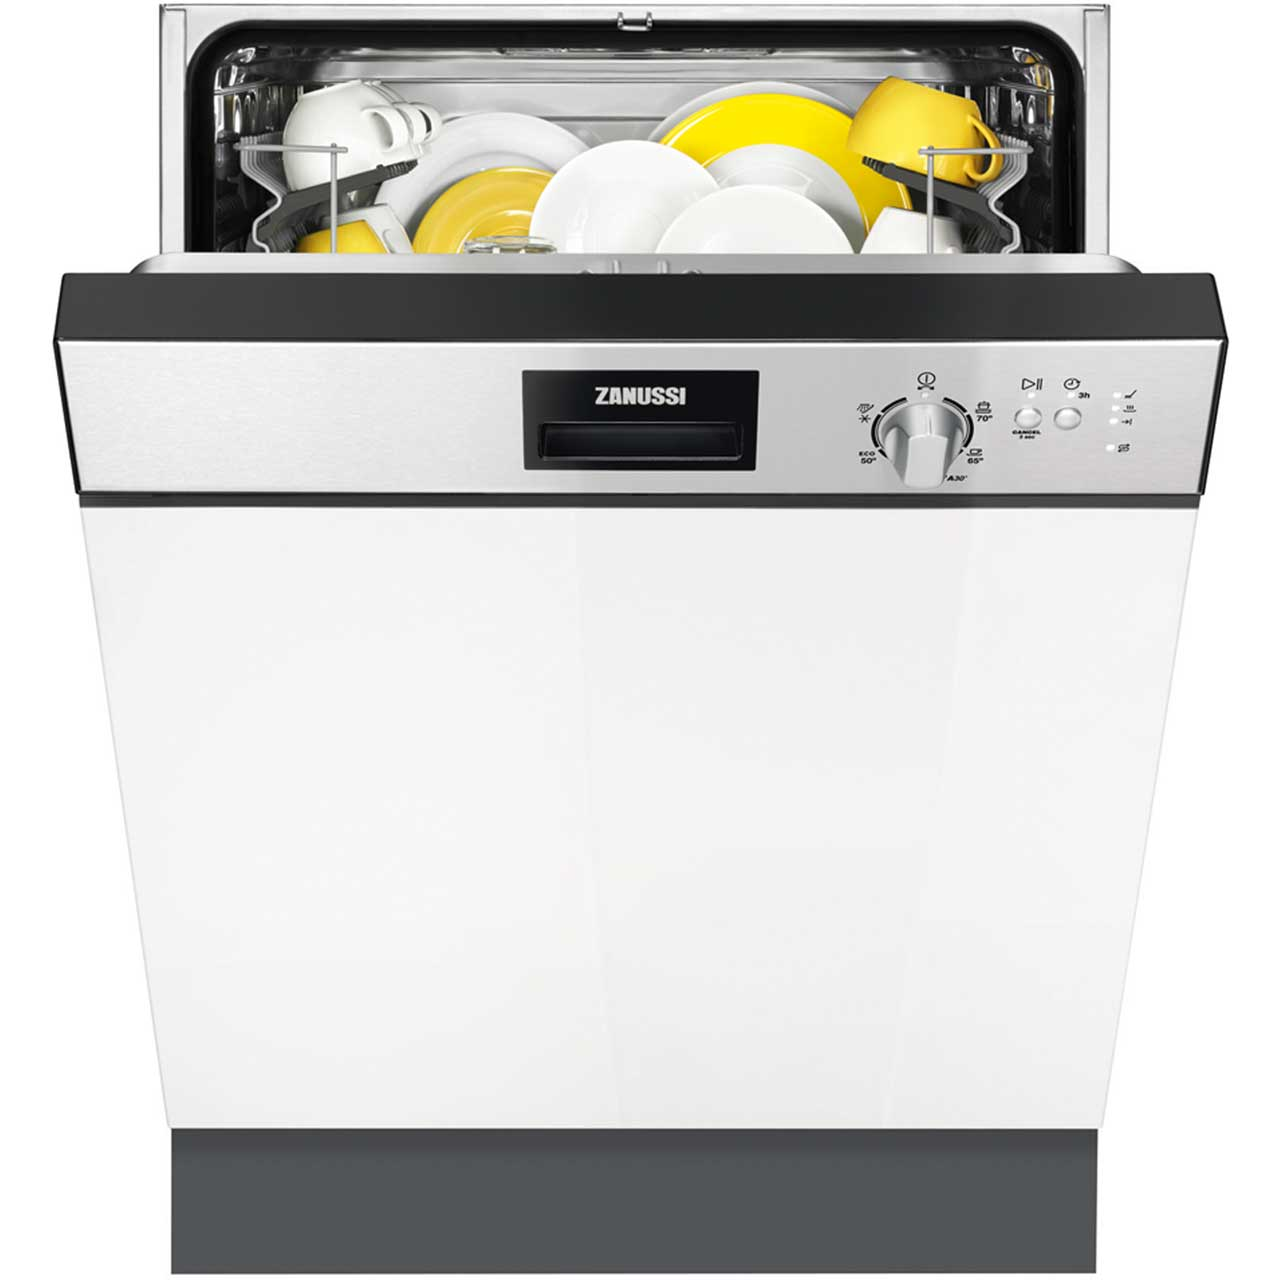 Zanussi ZDI22002XA Integrated Dishwasher in Stainless Steel